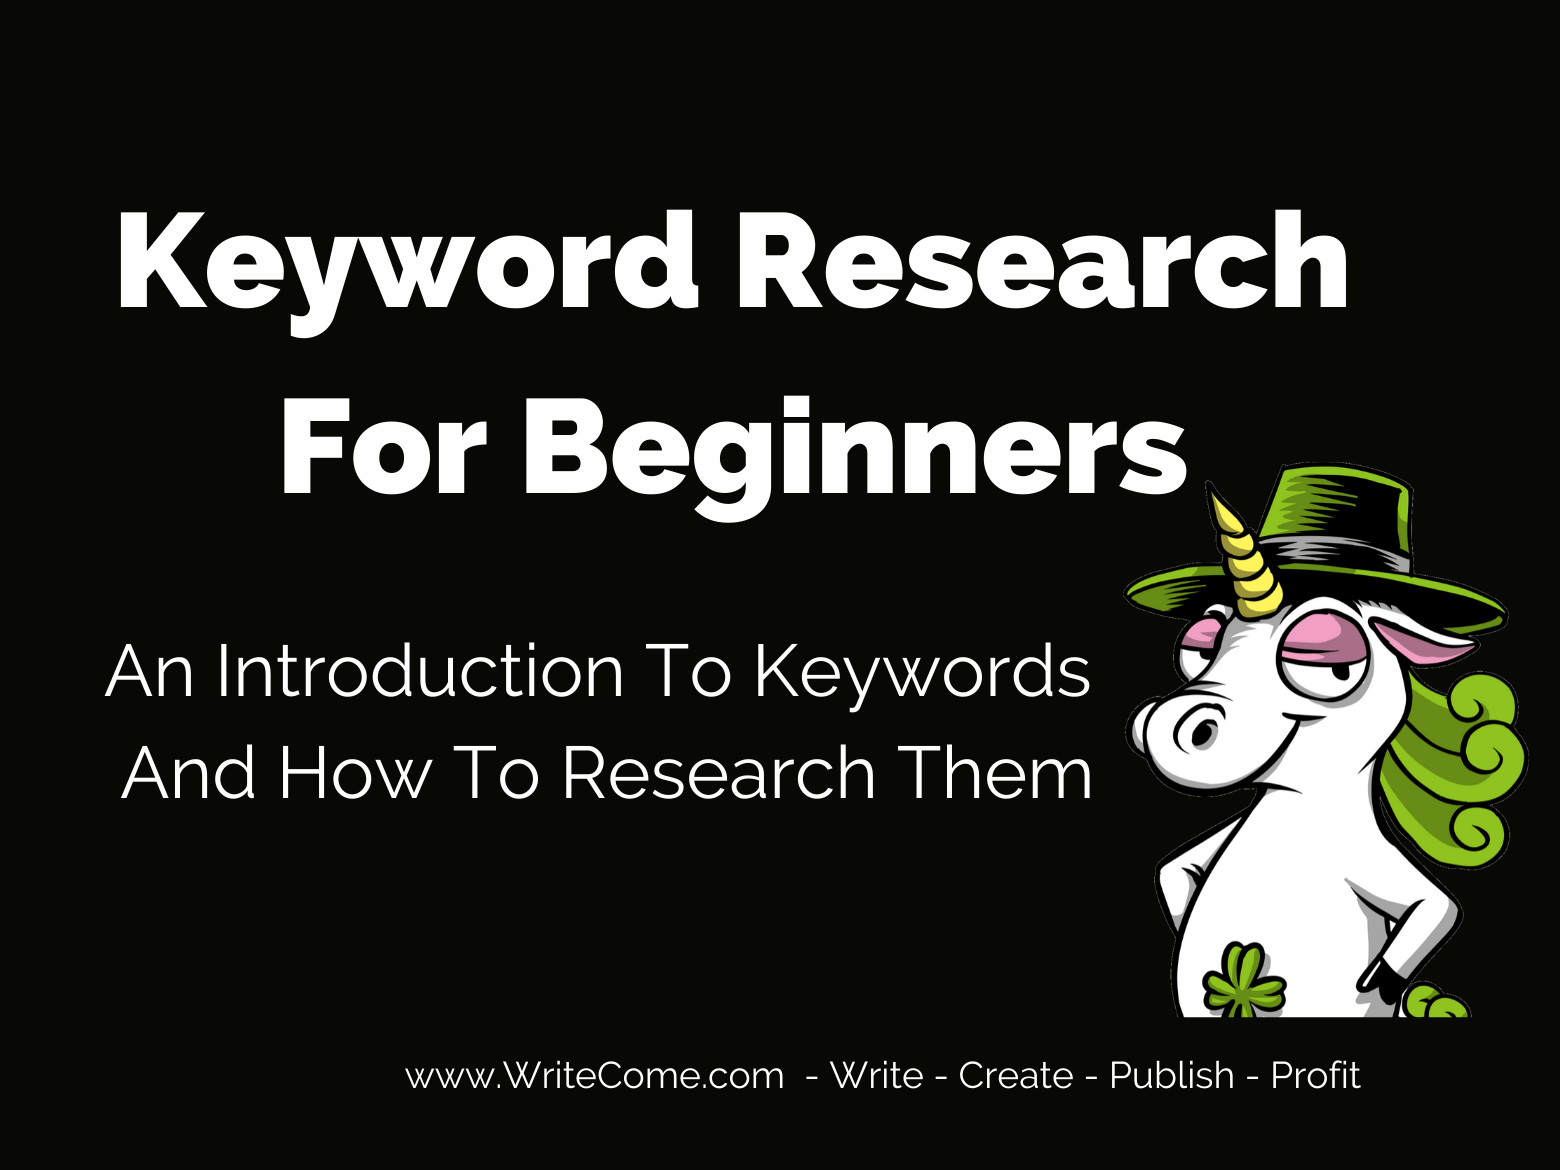 Keyword Research For Beginners